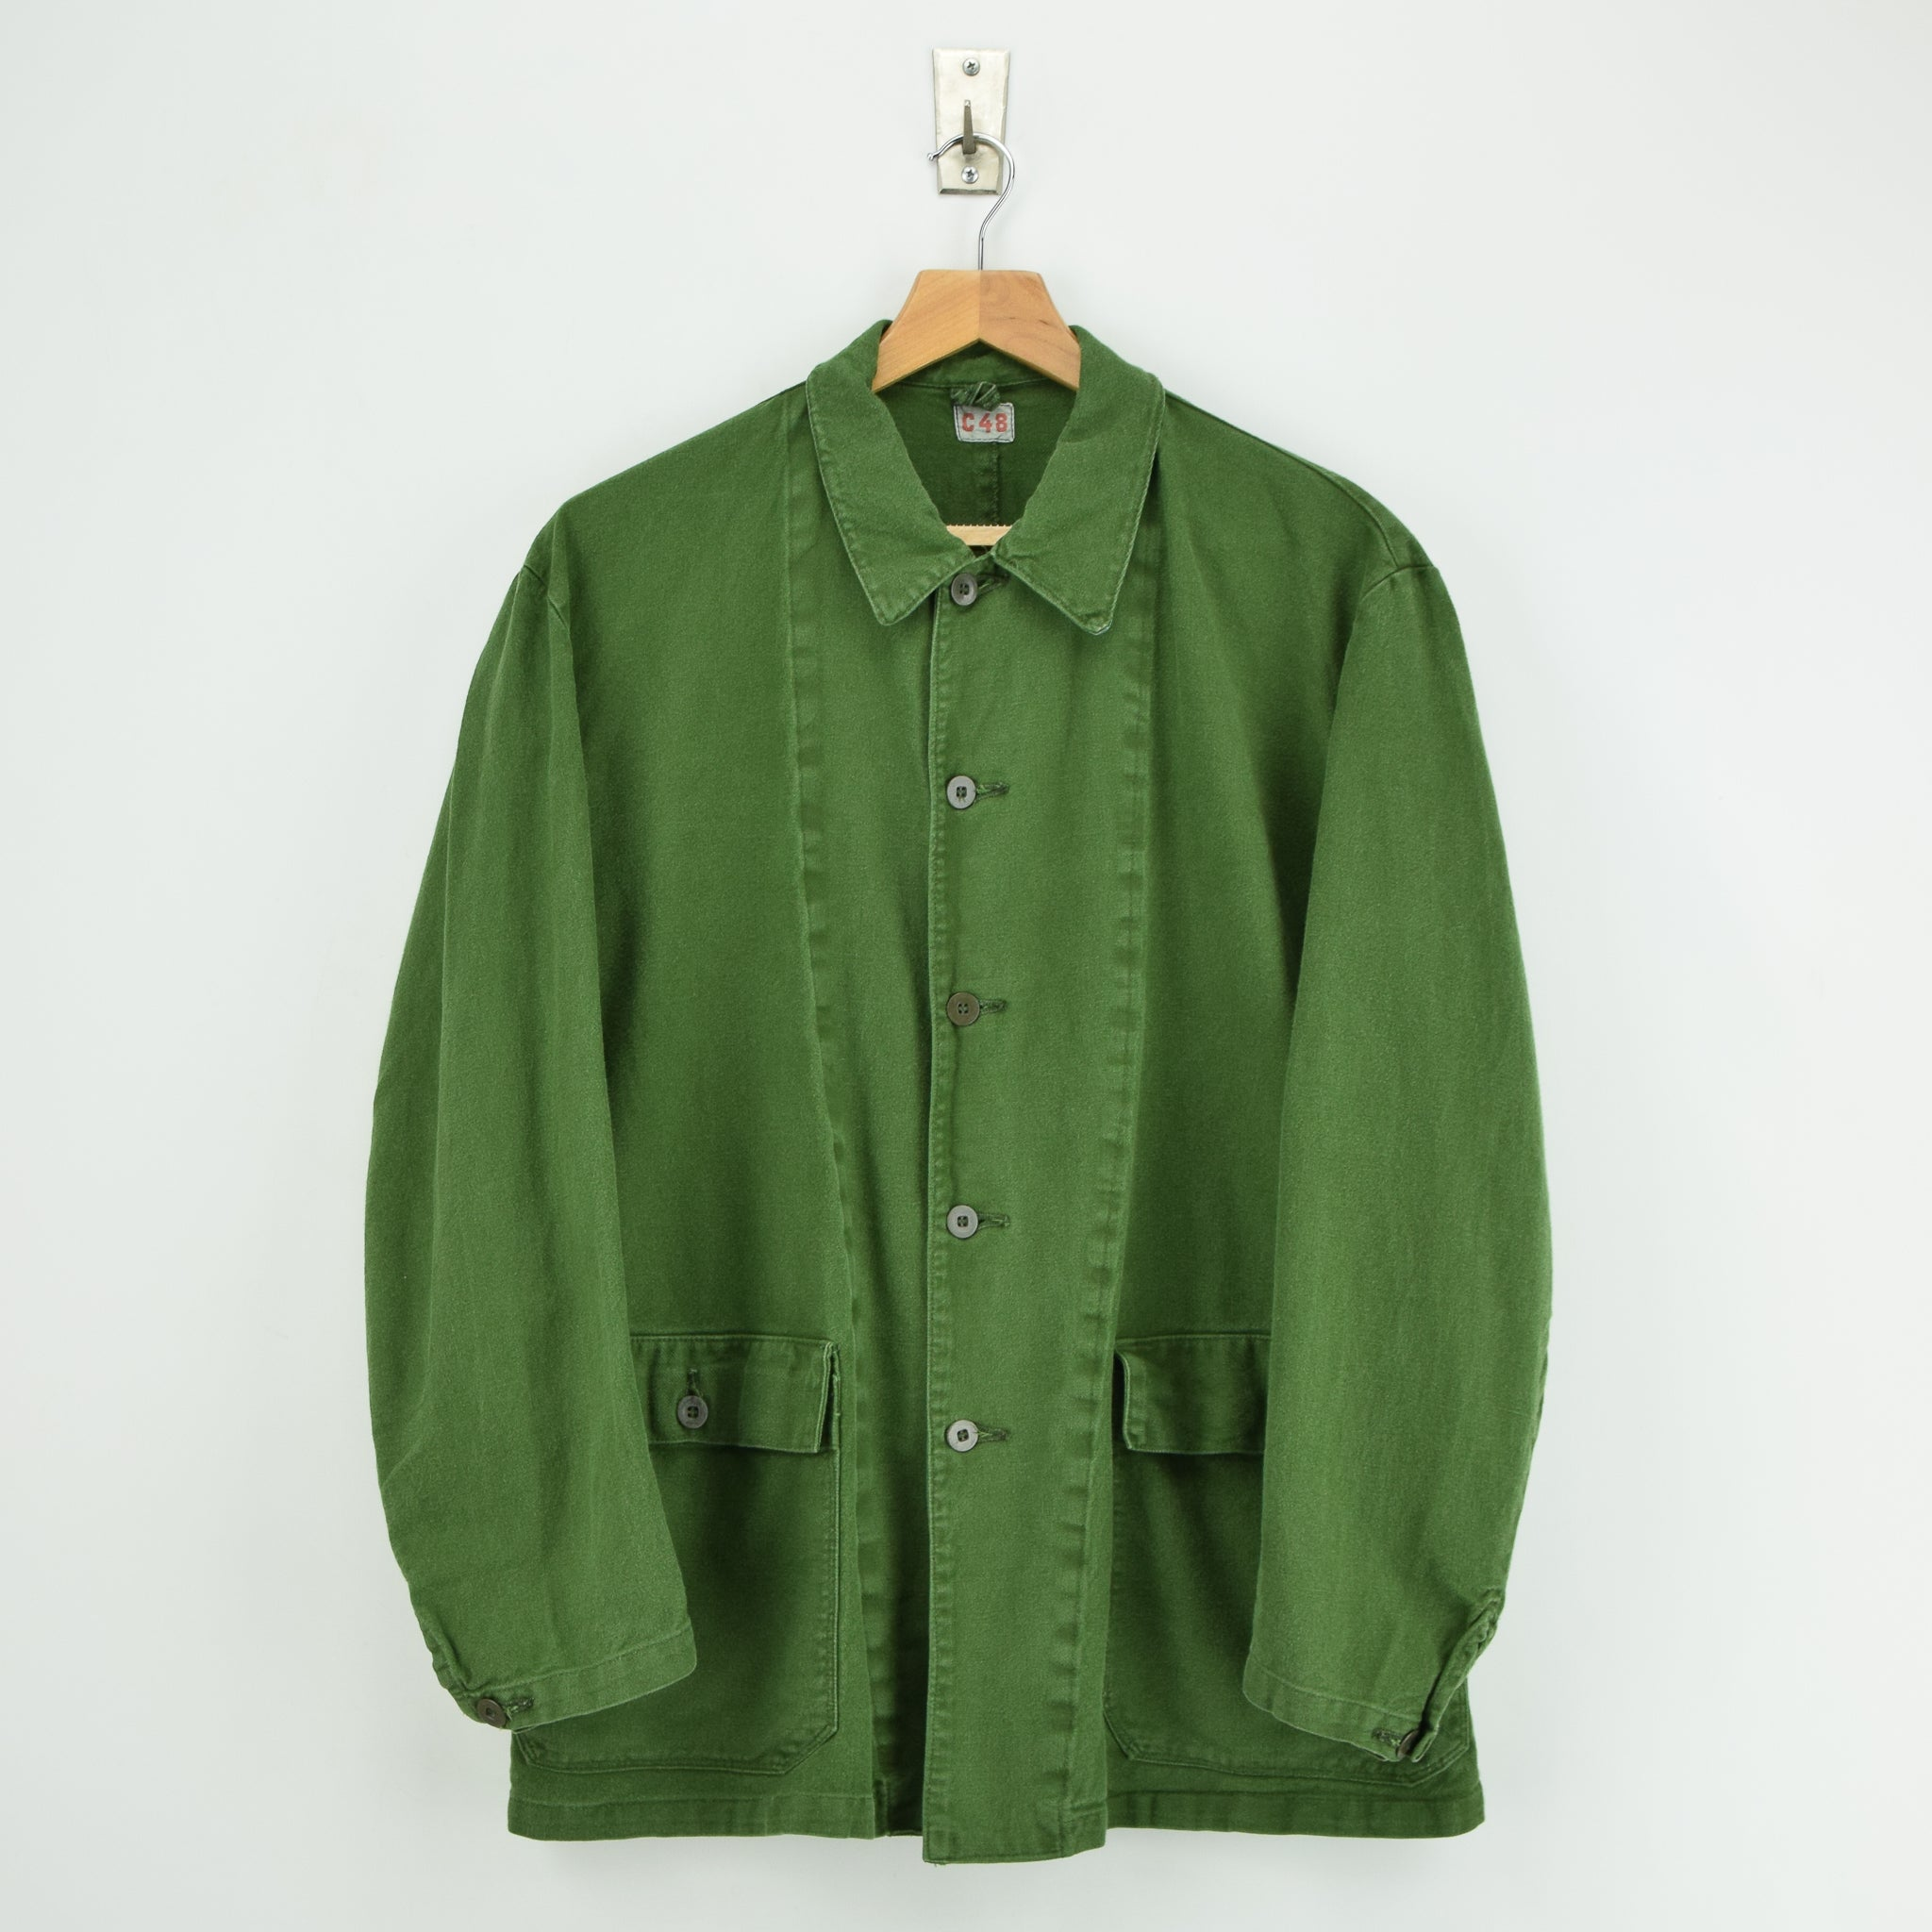 Vintage Swedish Worker Style Distressed Green Military Field Jacket M / L front